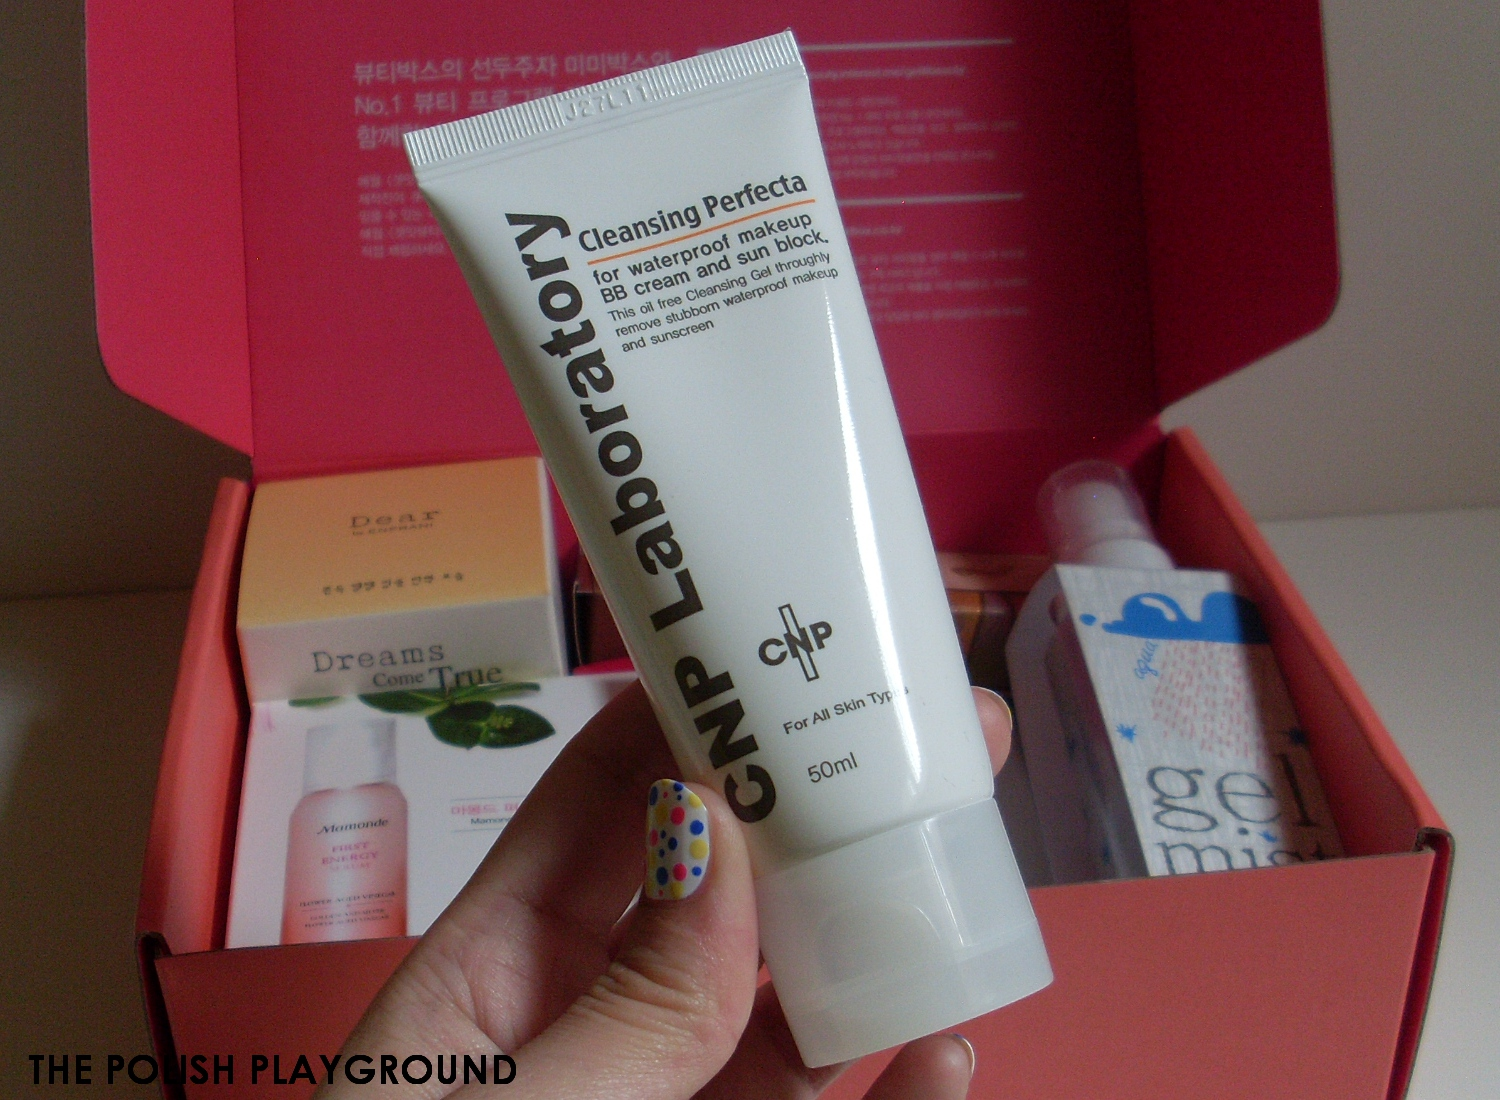 Memebox Luckybox #1 Unboxing and First Impressions - CNP Laboratory Cleansing Perfecta